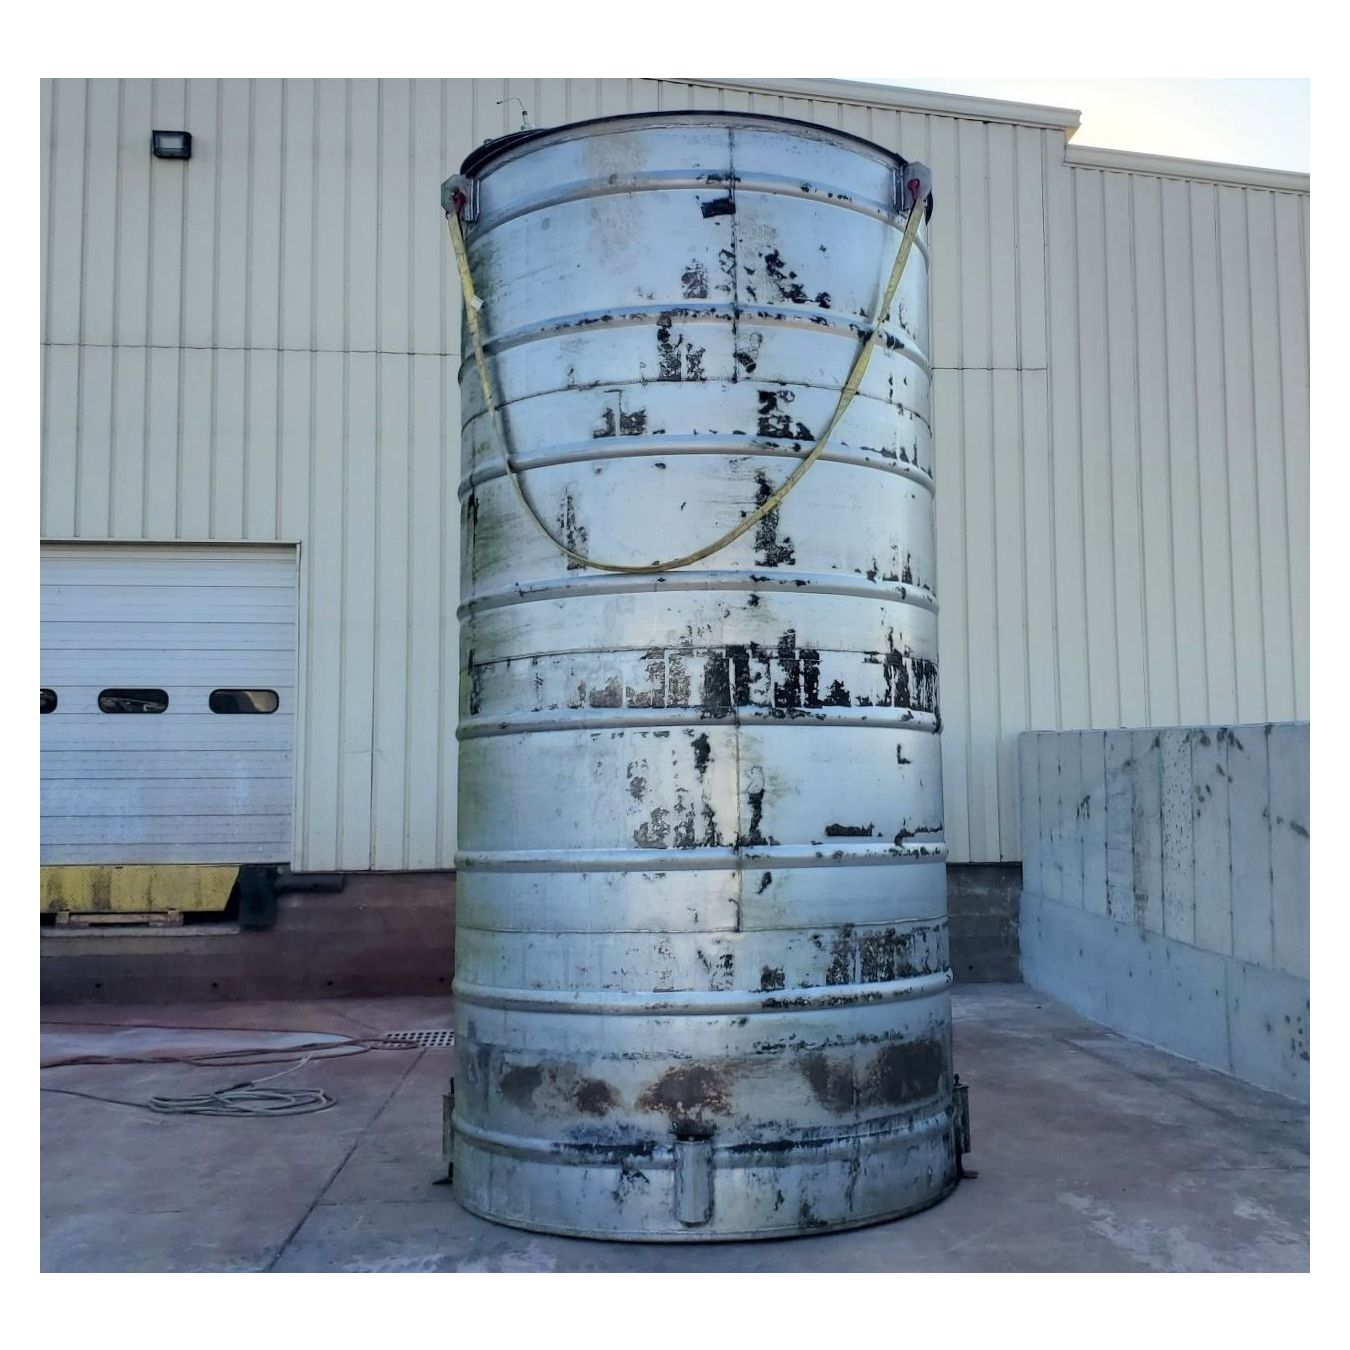 Used 8' dia Stainless Steel Vertical Tank - 6,000 Gallons